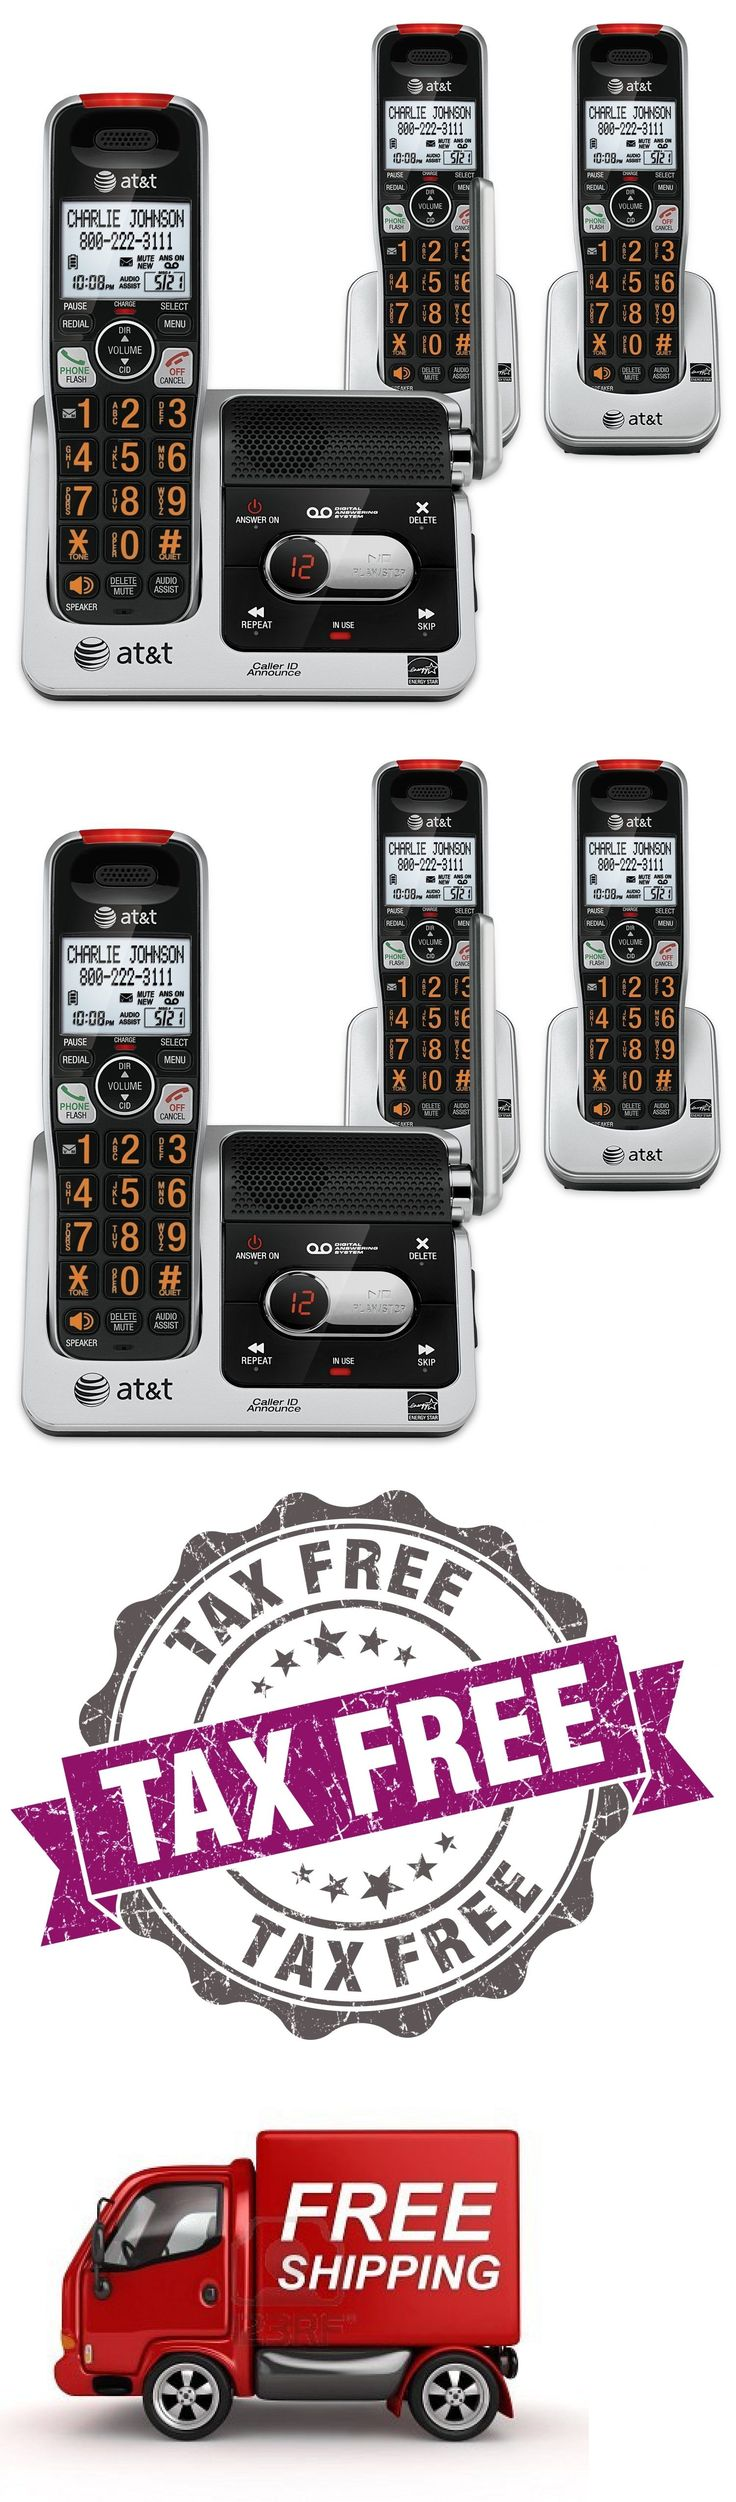 Cordless Telephones and Handsets: Atandt Crl82312 Dect 6.0 Phone Answering System With Caller Id Call Waiting 3 C... -> BUY IT NOW ONLY: $67.39 on eBay!